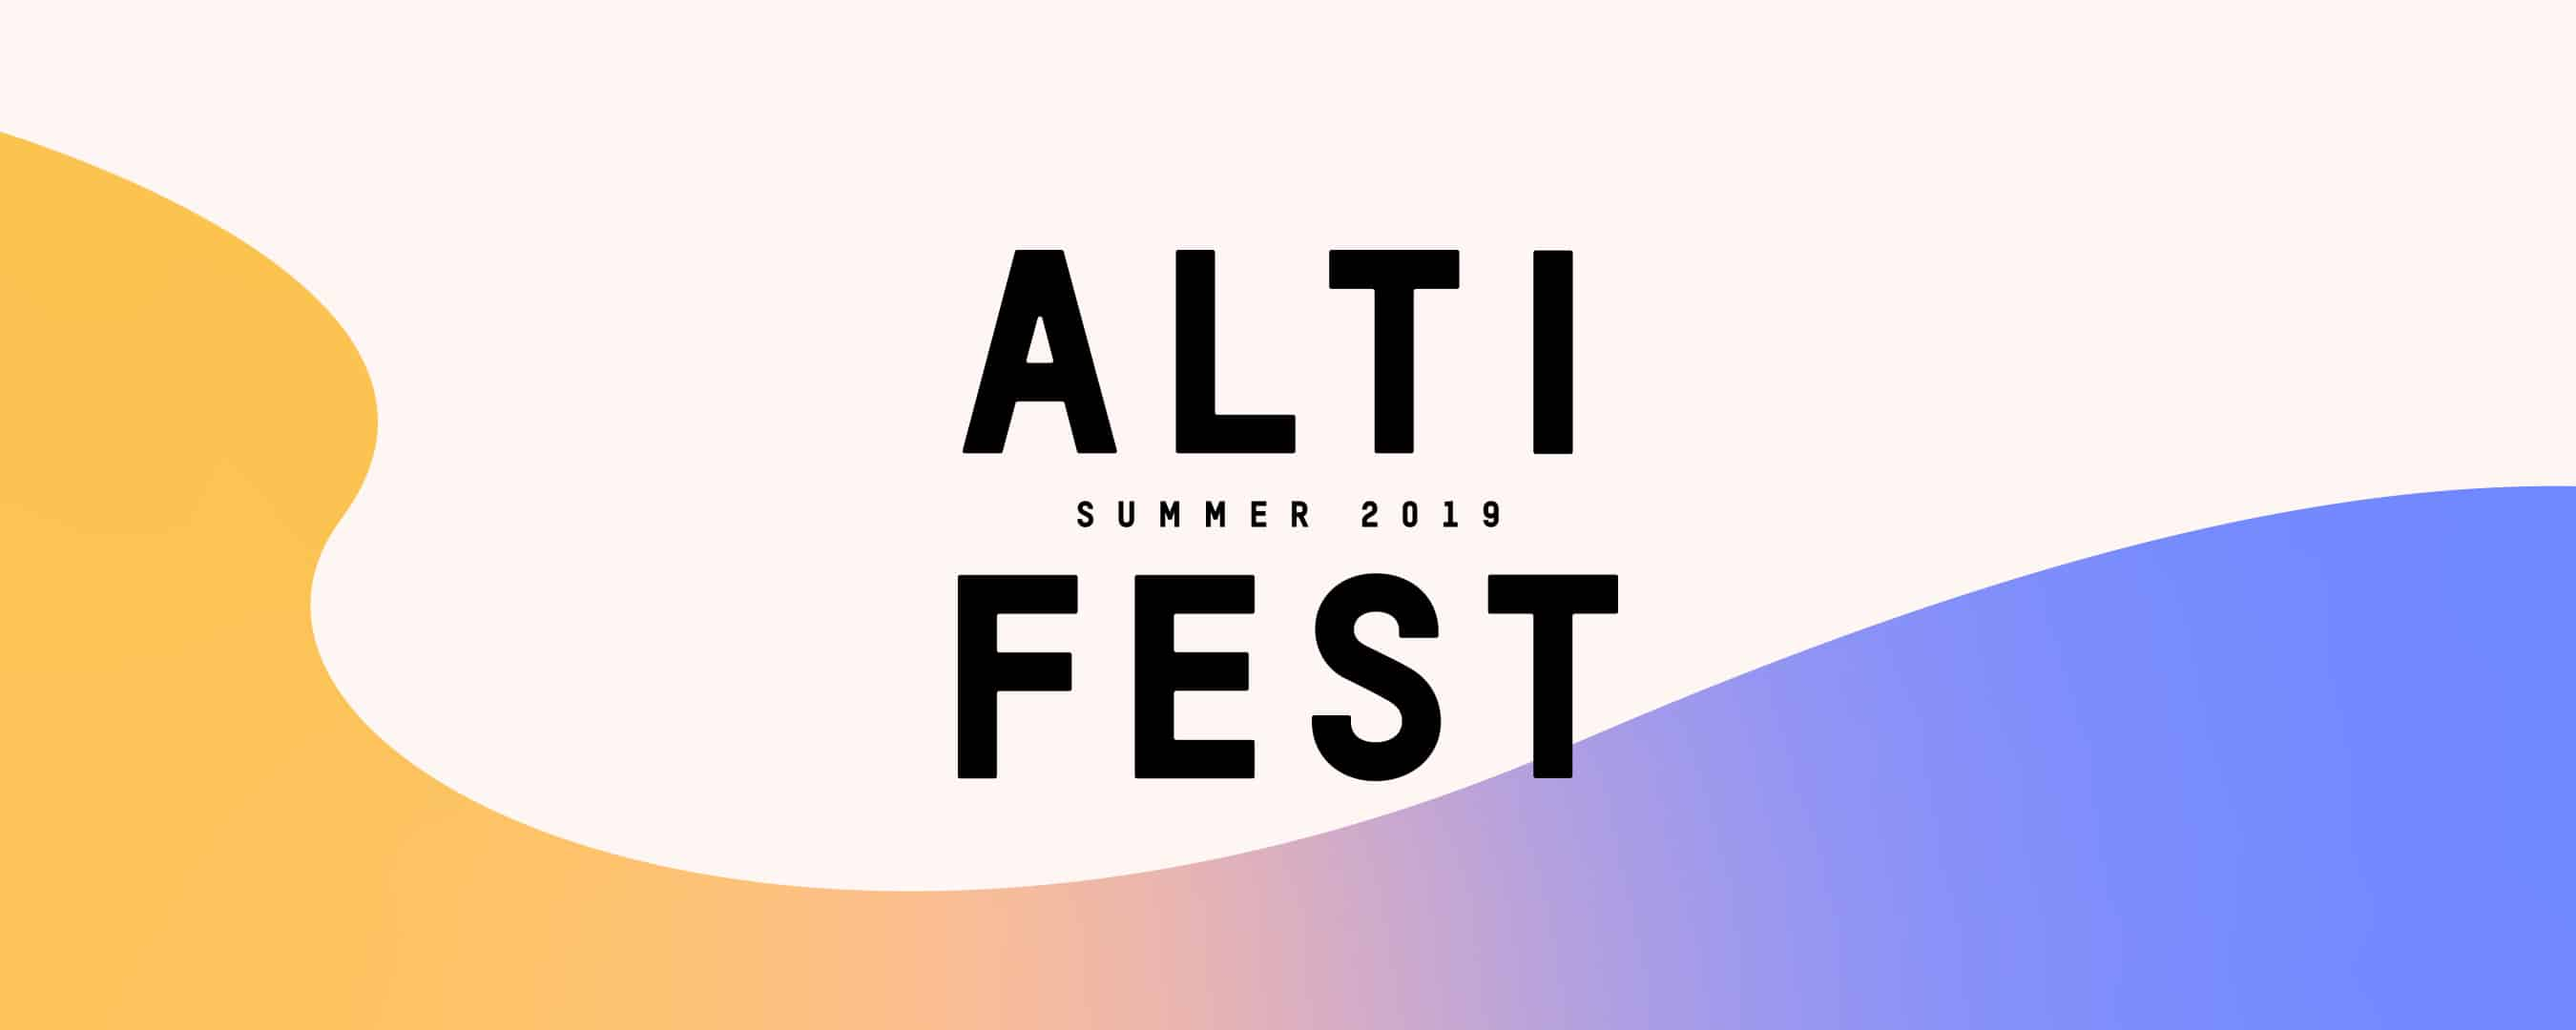 Save During Alti Fest